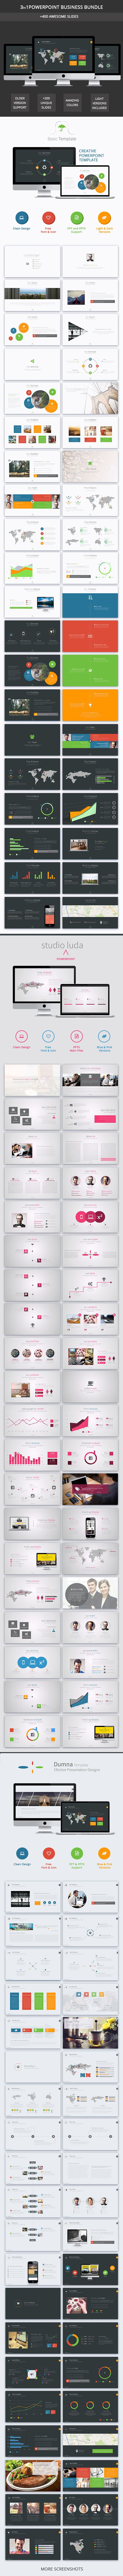 Business 3in1 Powerpoint Bundle Template #design #slide Download: http://graphicriver.net/item/business-3in1-powerpoint-bundle/11123036?ref=ksioks